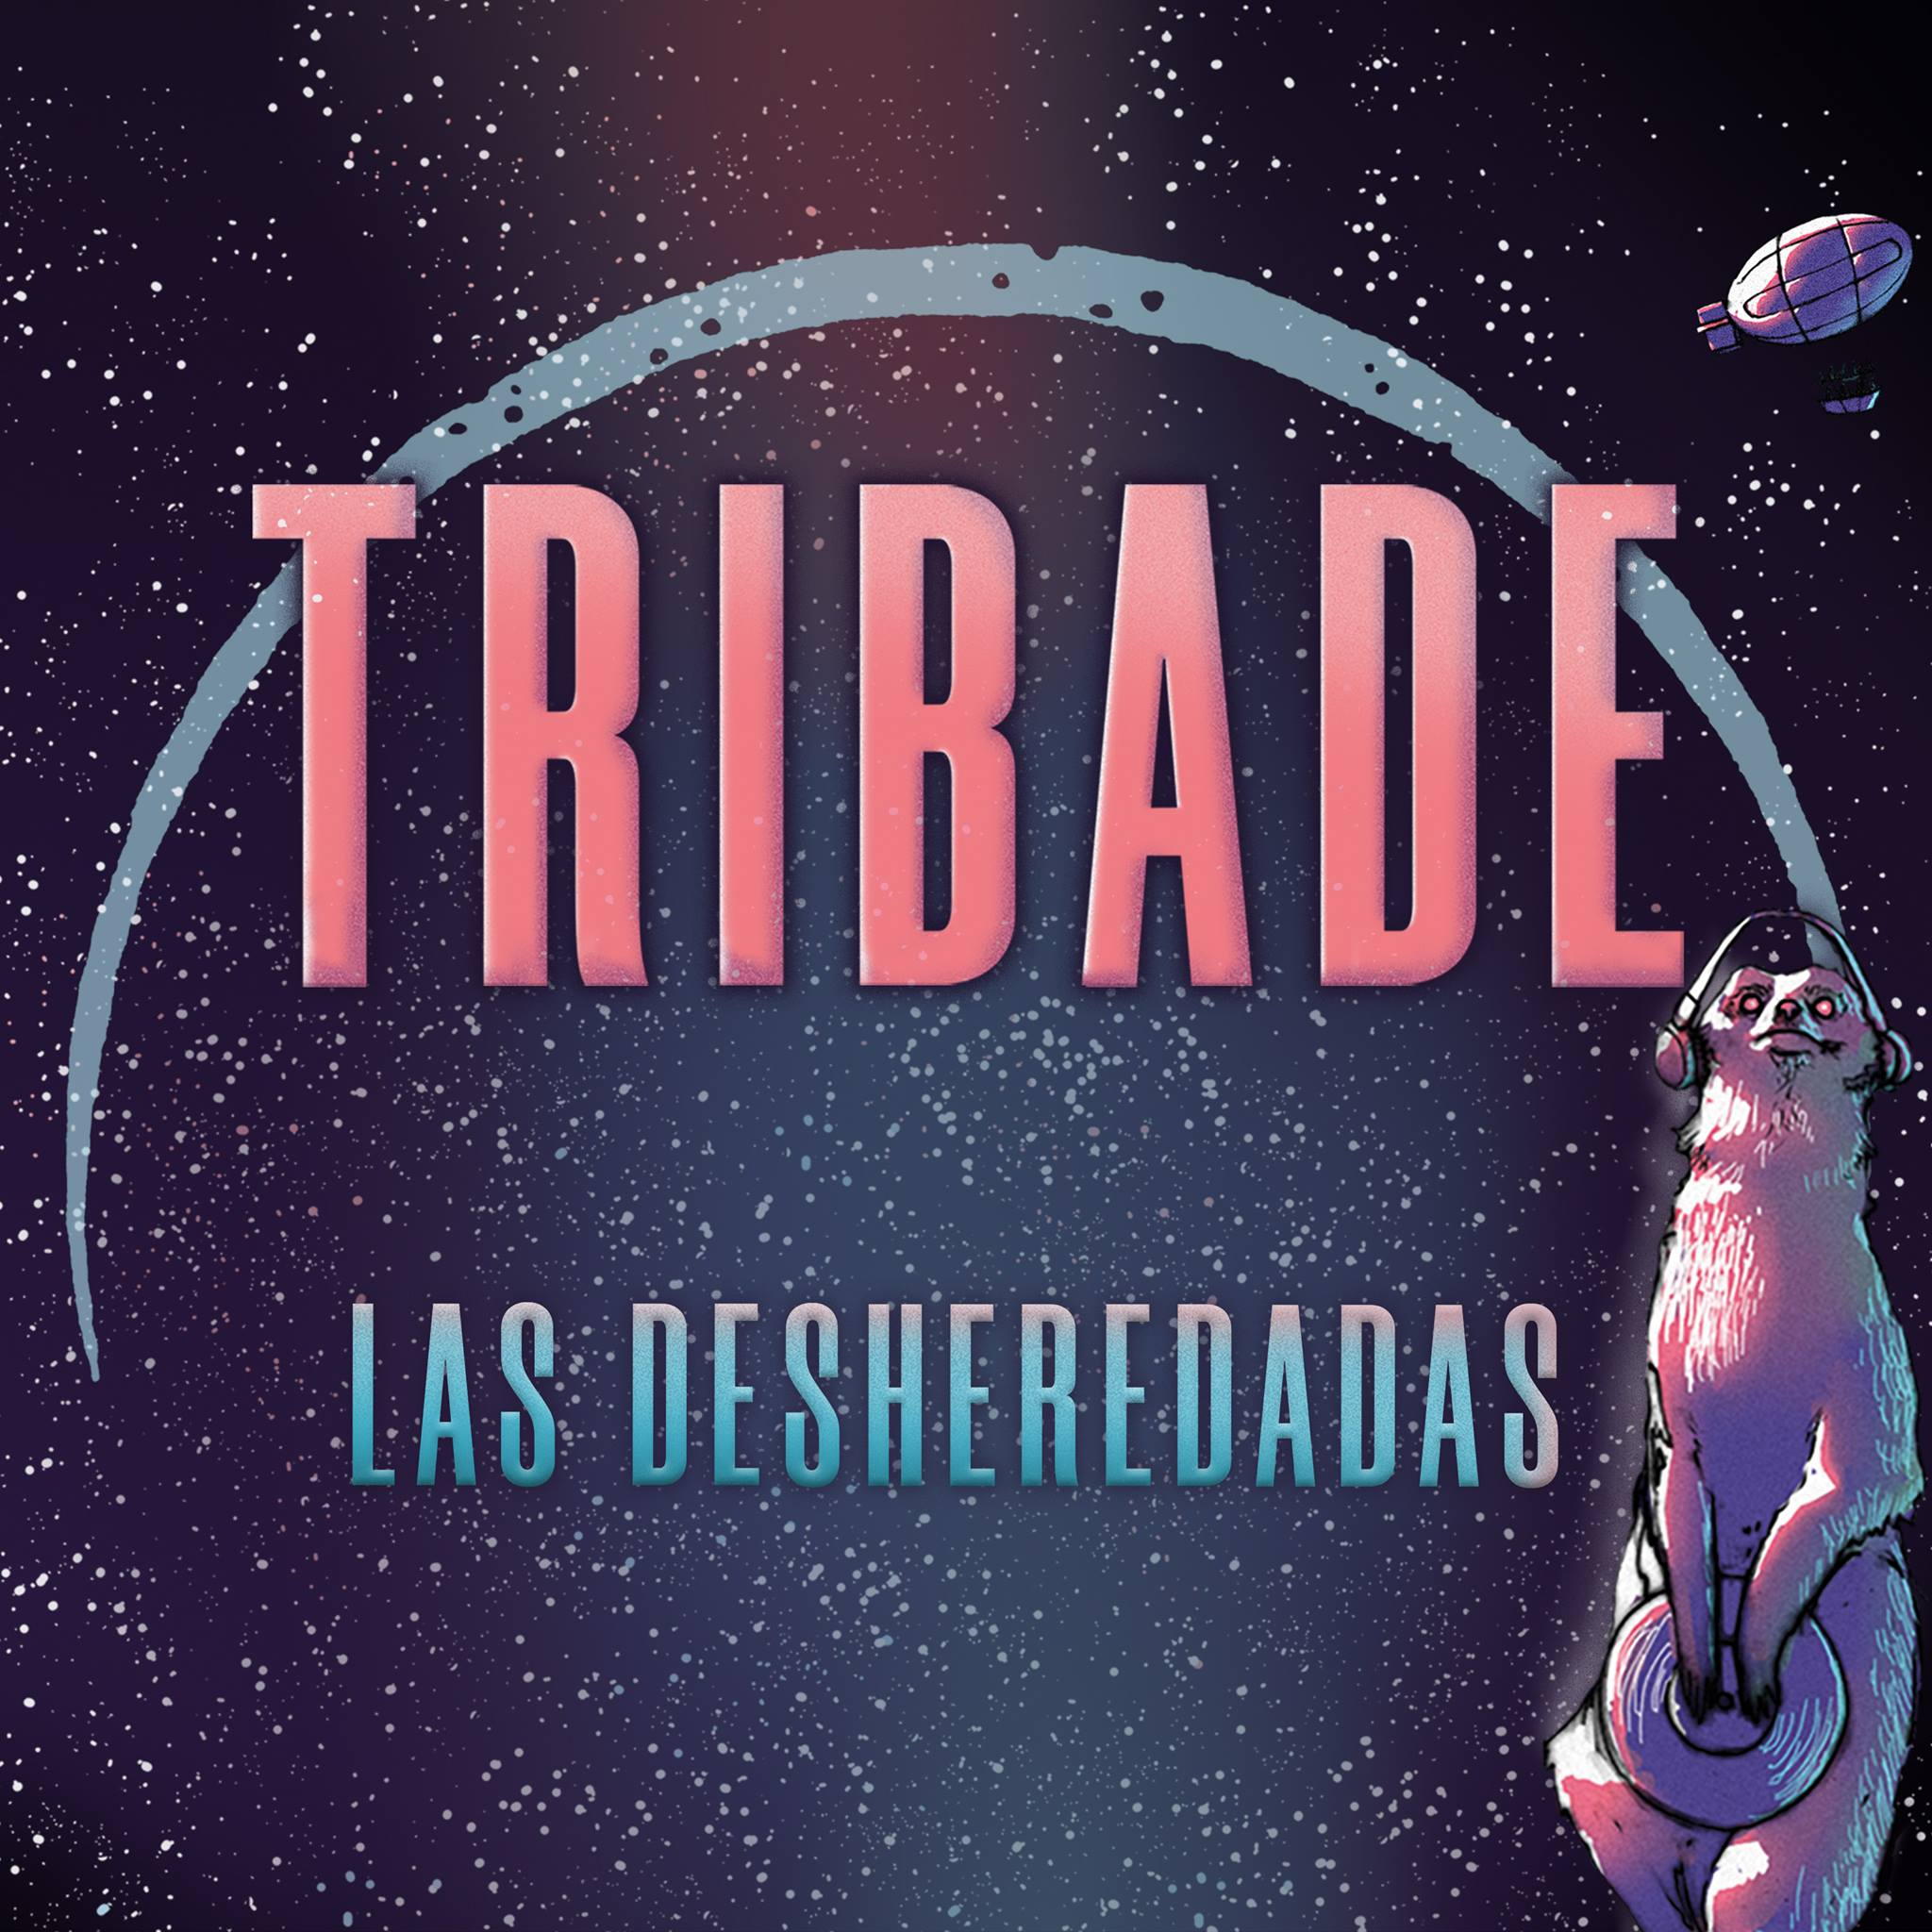 tribade las desheredadas single